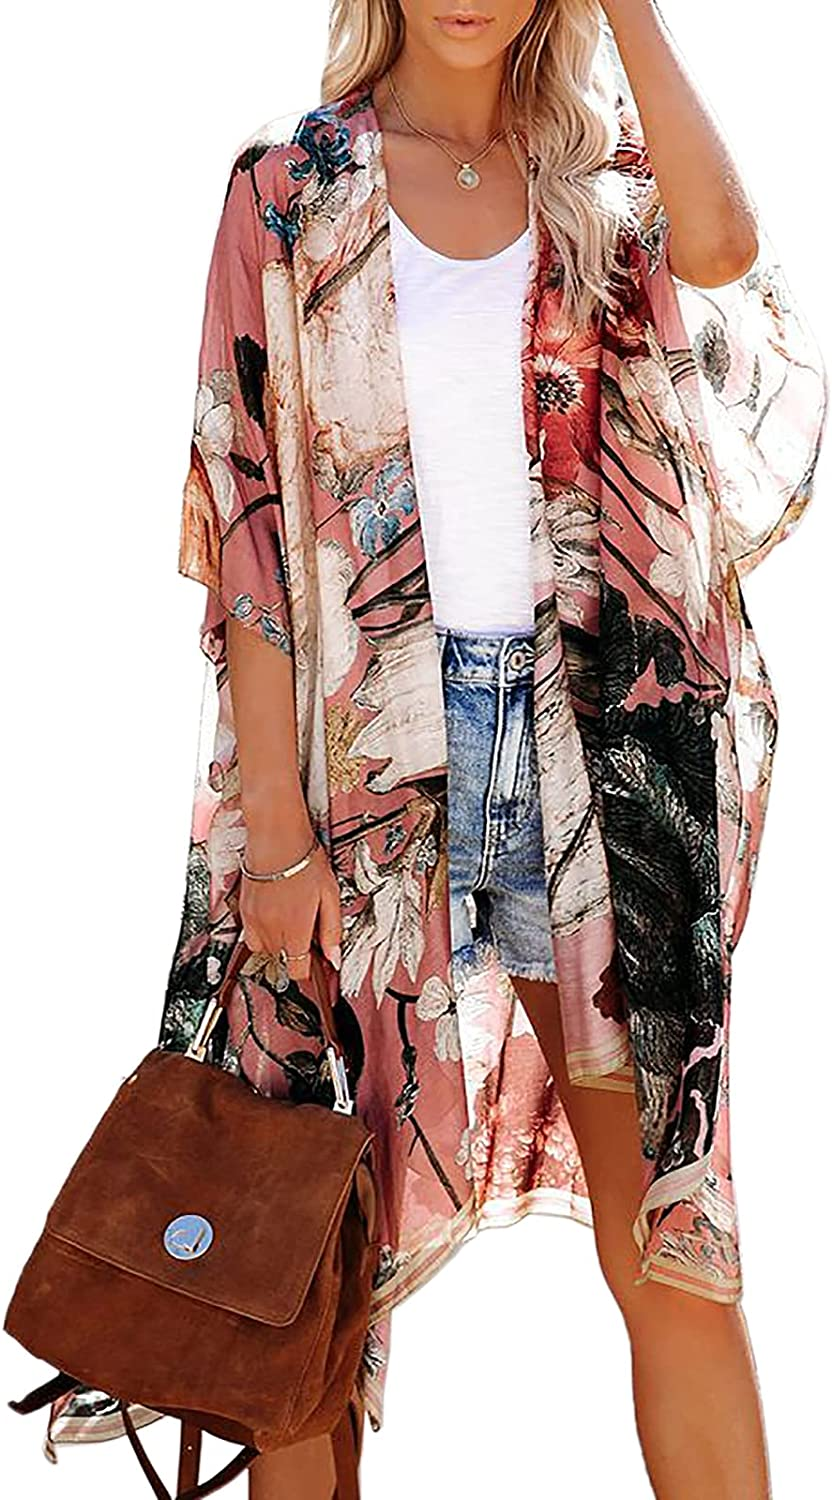 Ivay Womens Floral Print Kimono Boho Beach Swimsuit Cover Up Casual Blouse Dusters Cardigan